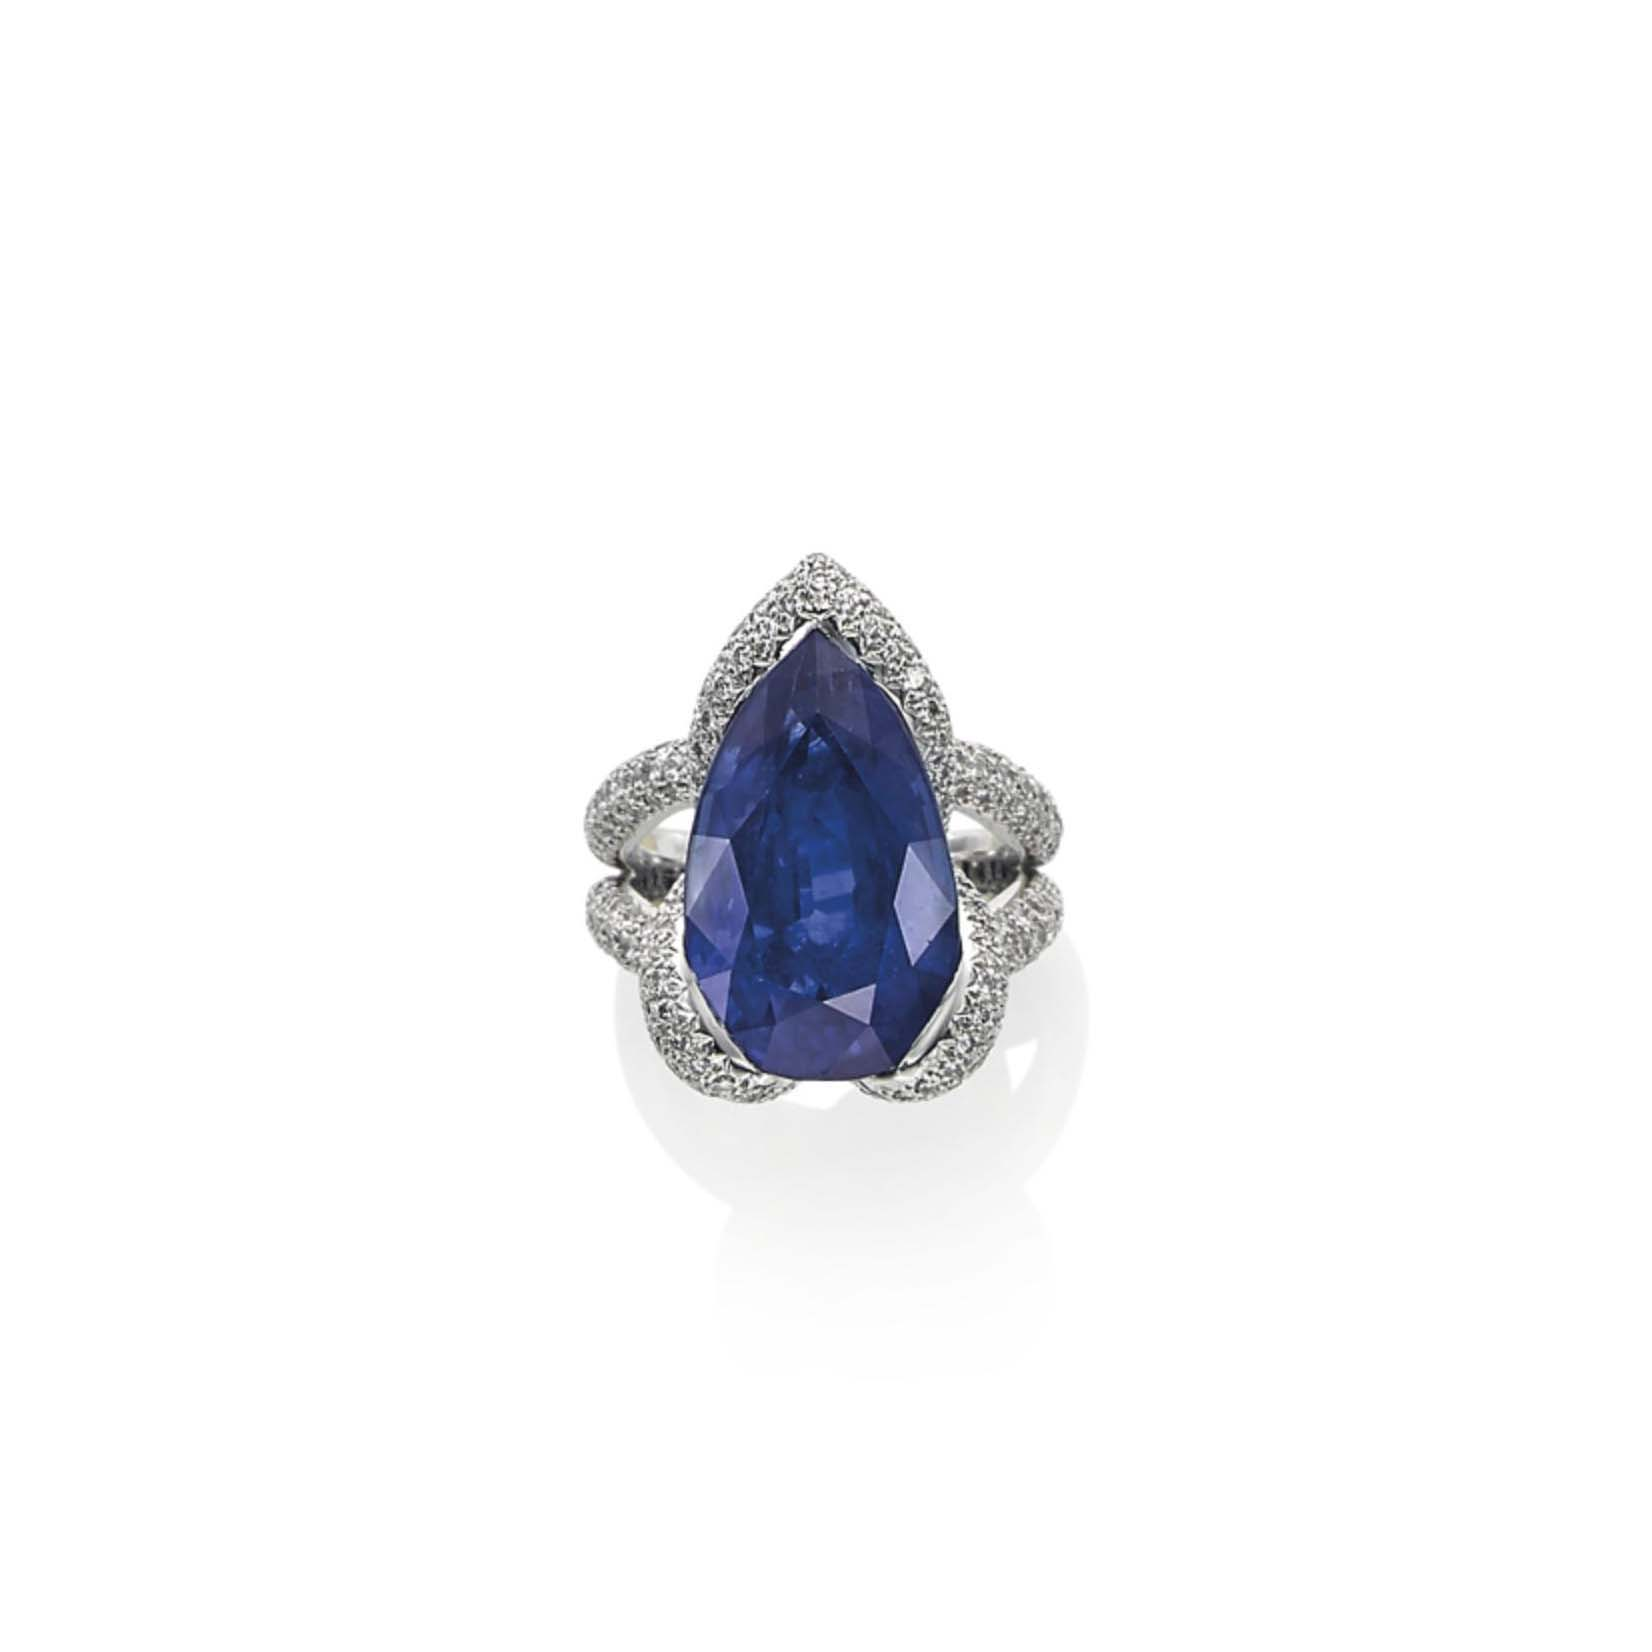 A SAPPHIRE AND DIAMOND 'SWAN' RING, BY MAUBOUSSIN